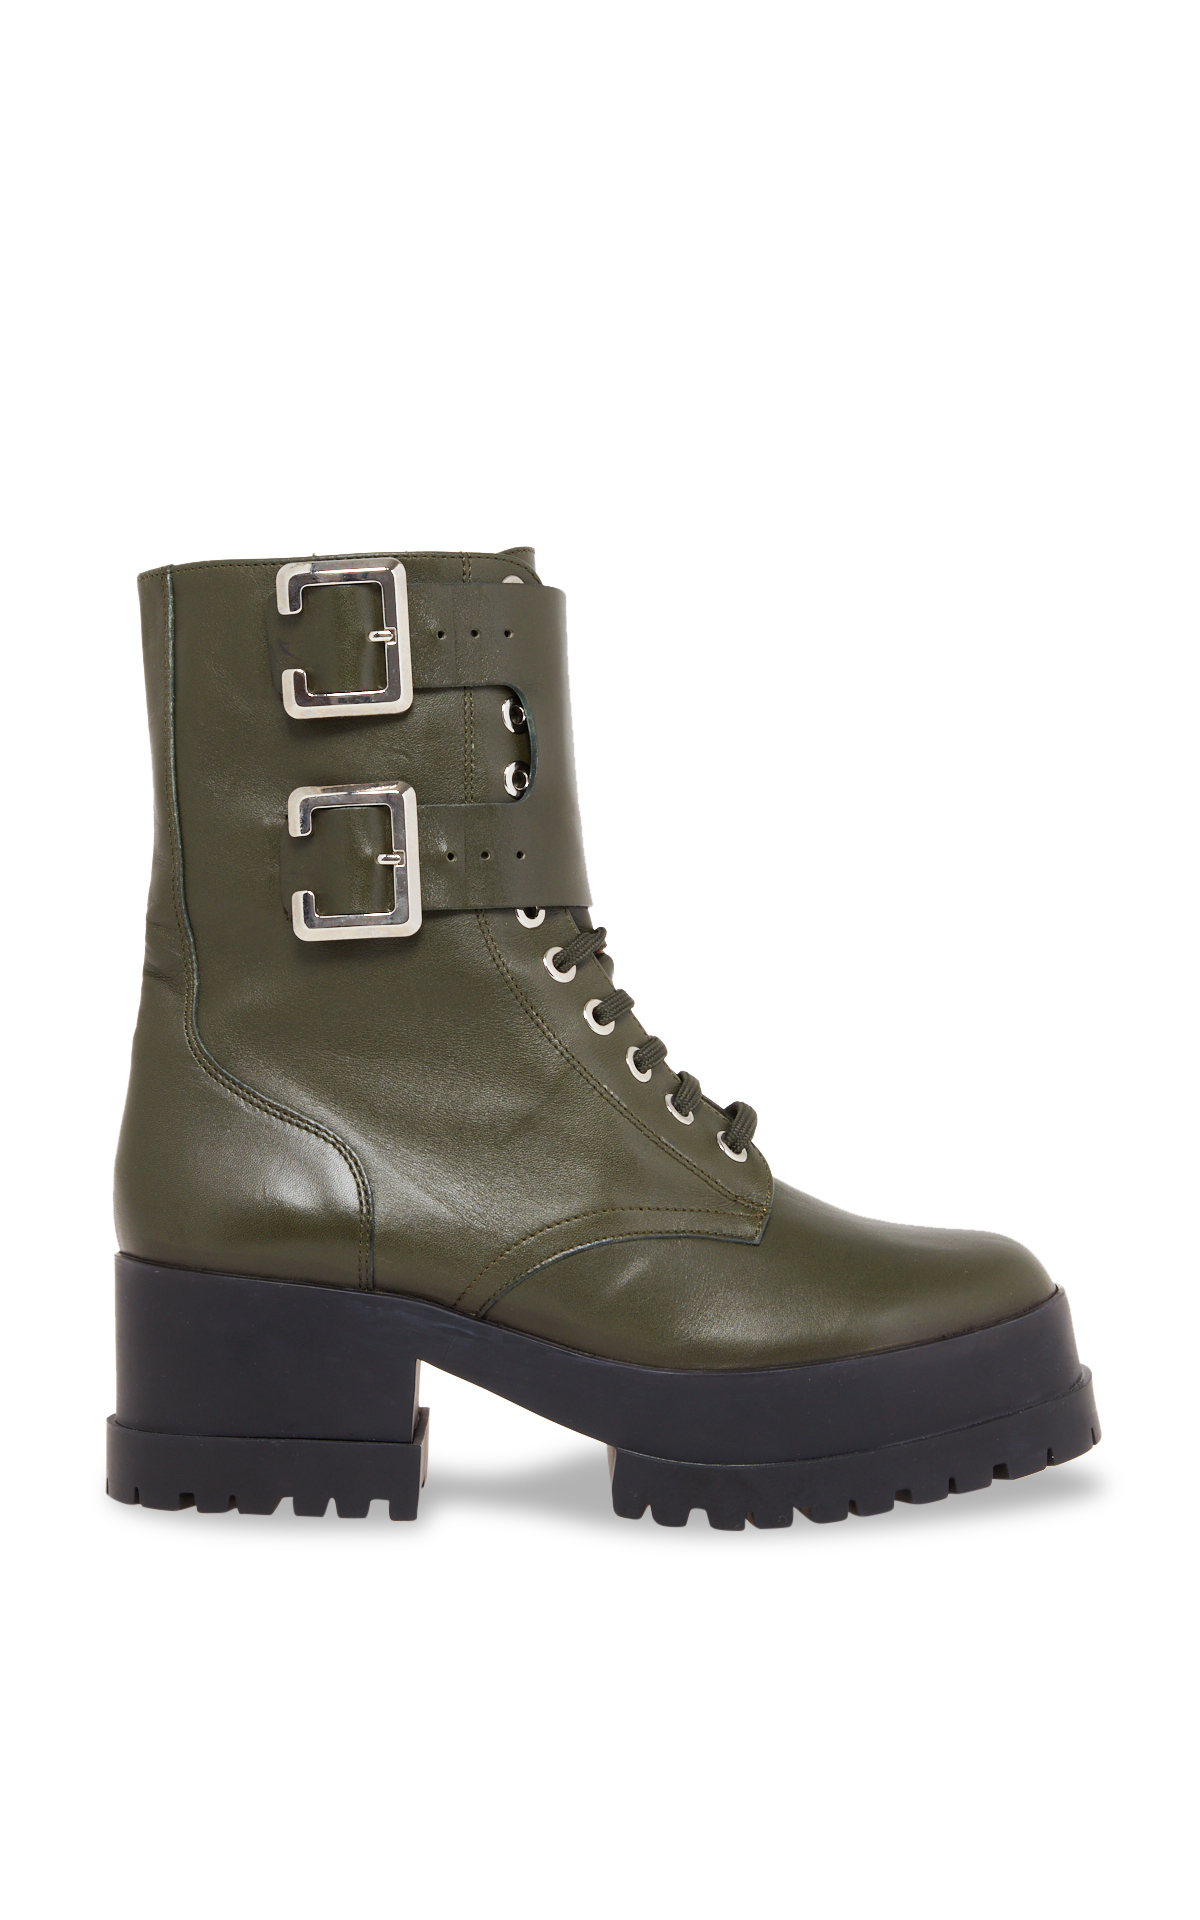 Clergerie Paris Bottines rangers kaki